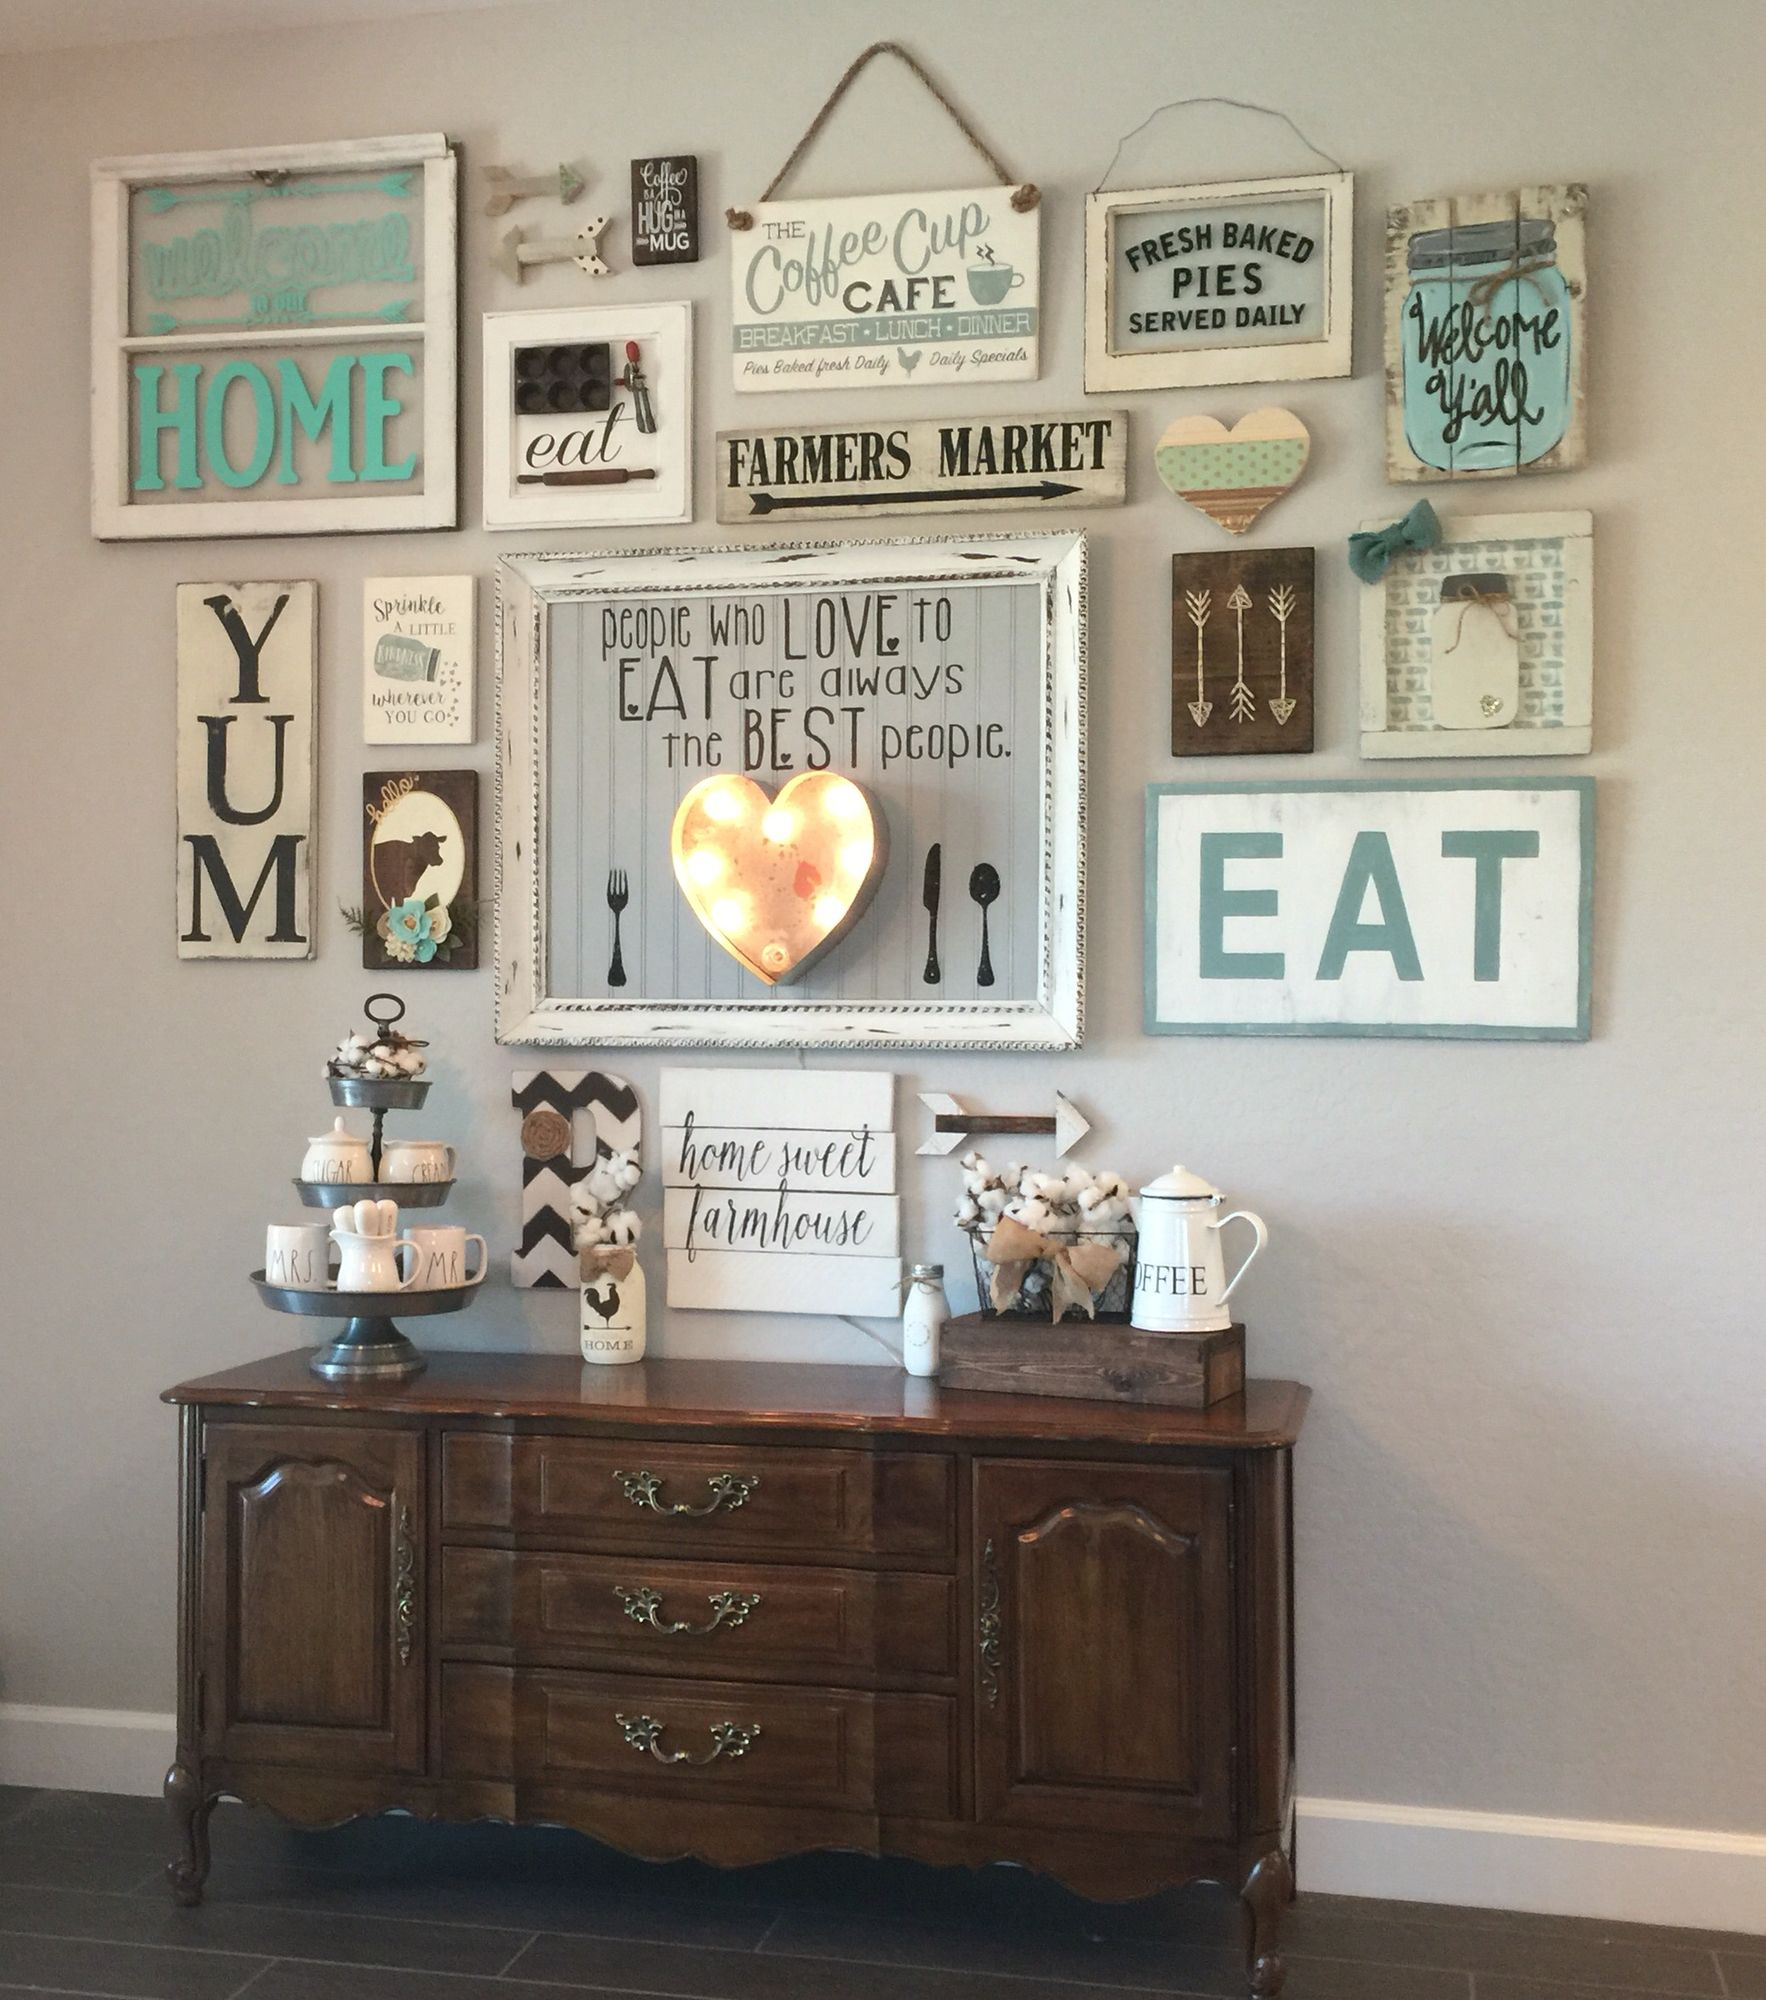 Kitchen Cabinets Lowes With Metal Wall Art Coffee Theme My Gallery Wall In Our Kitchen I39m Colewifey On Ig